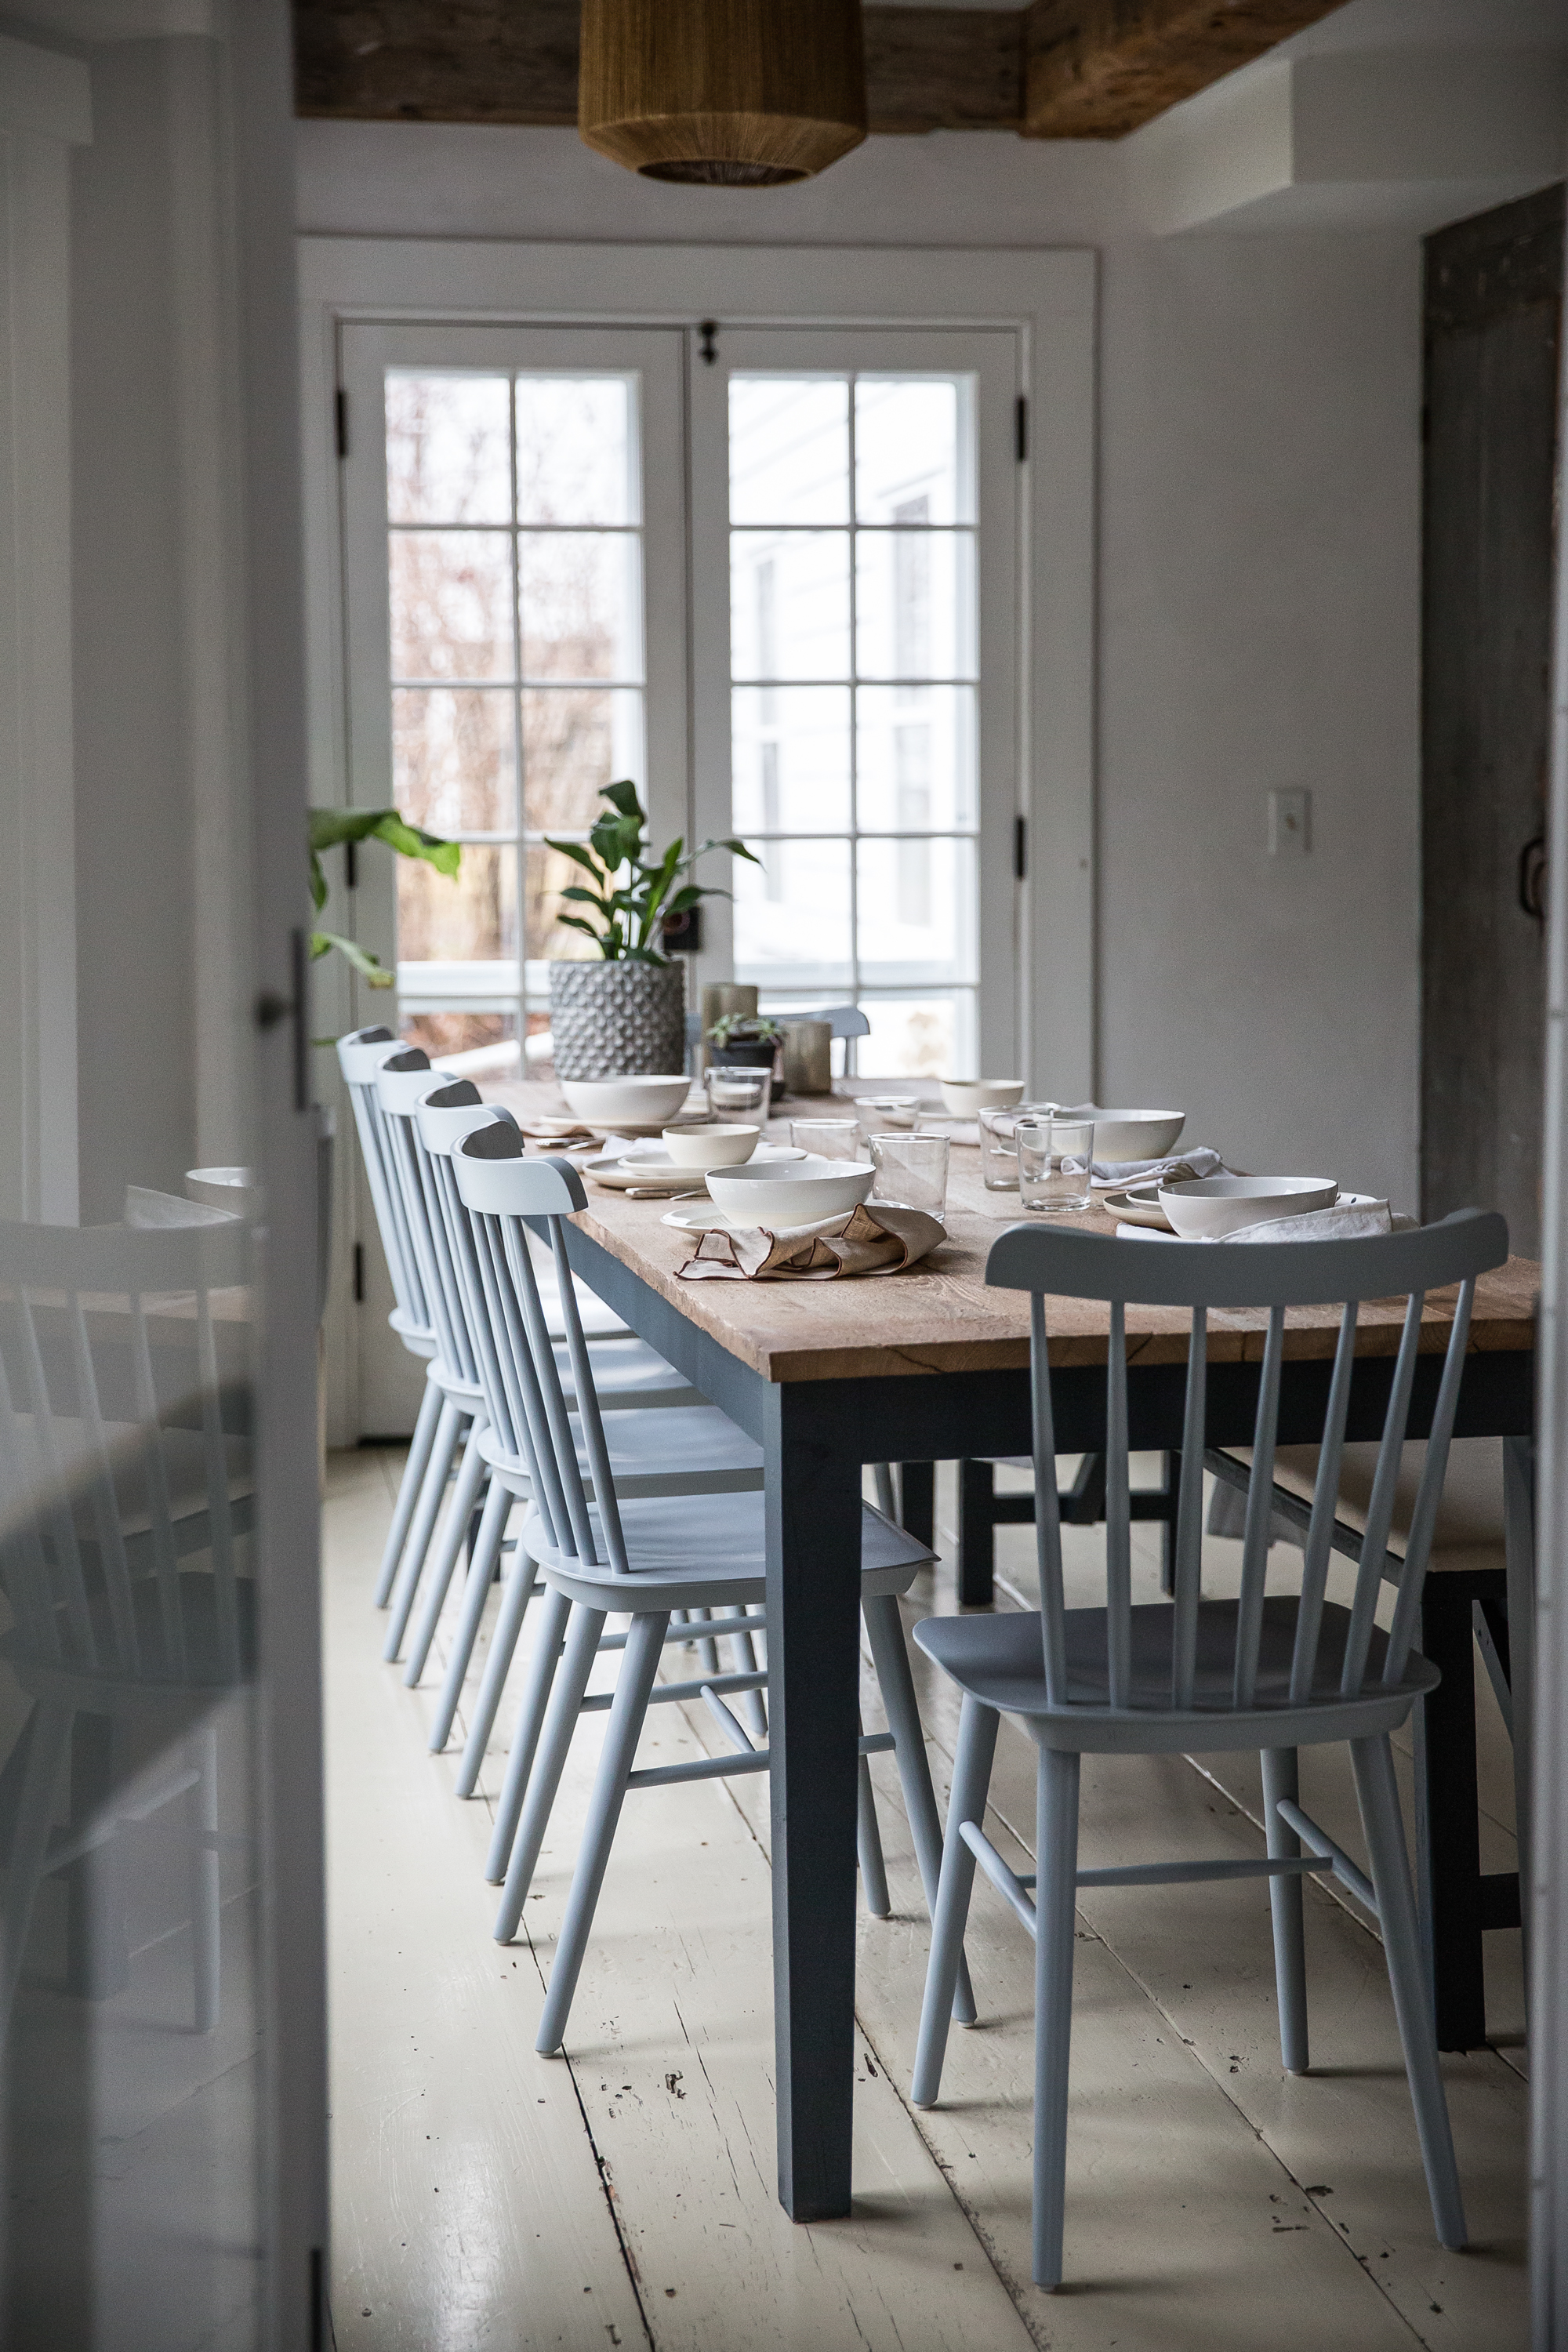 Jersey-Ice-Cream-Co.-Old-Chatham-House-Remodelista-dining-table